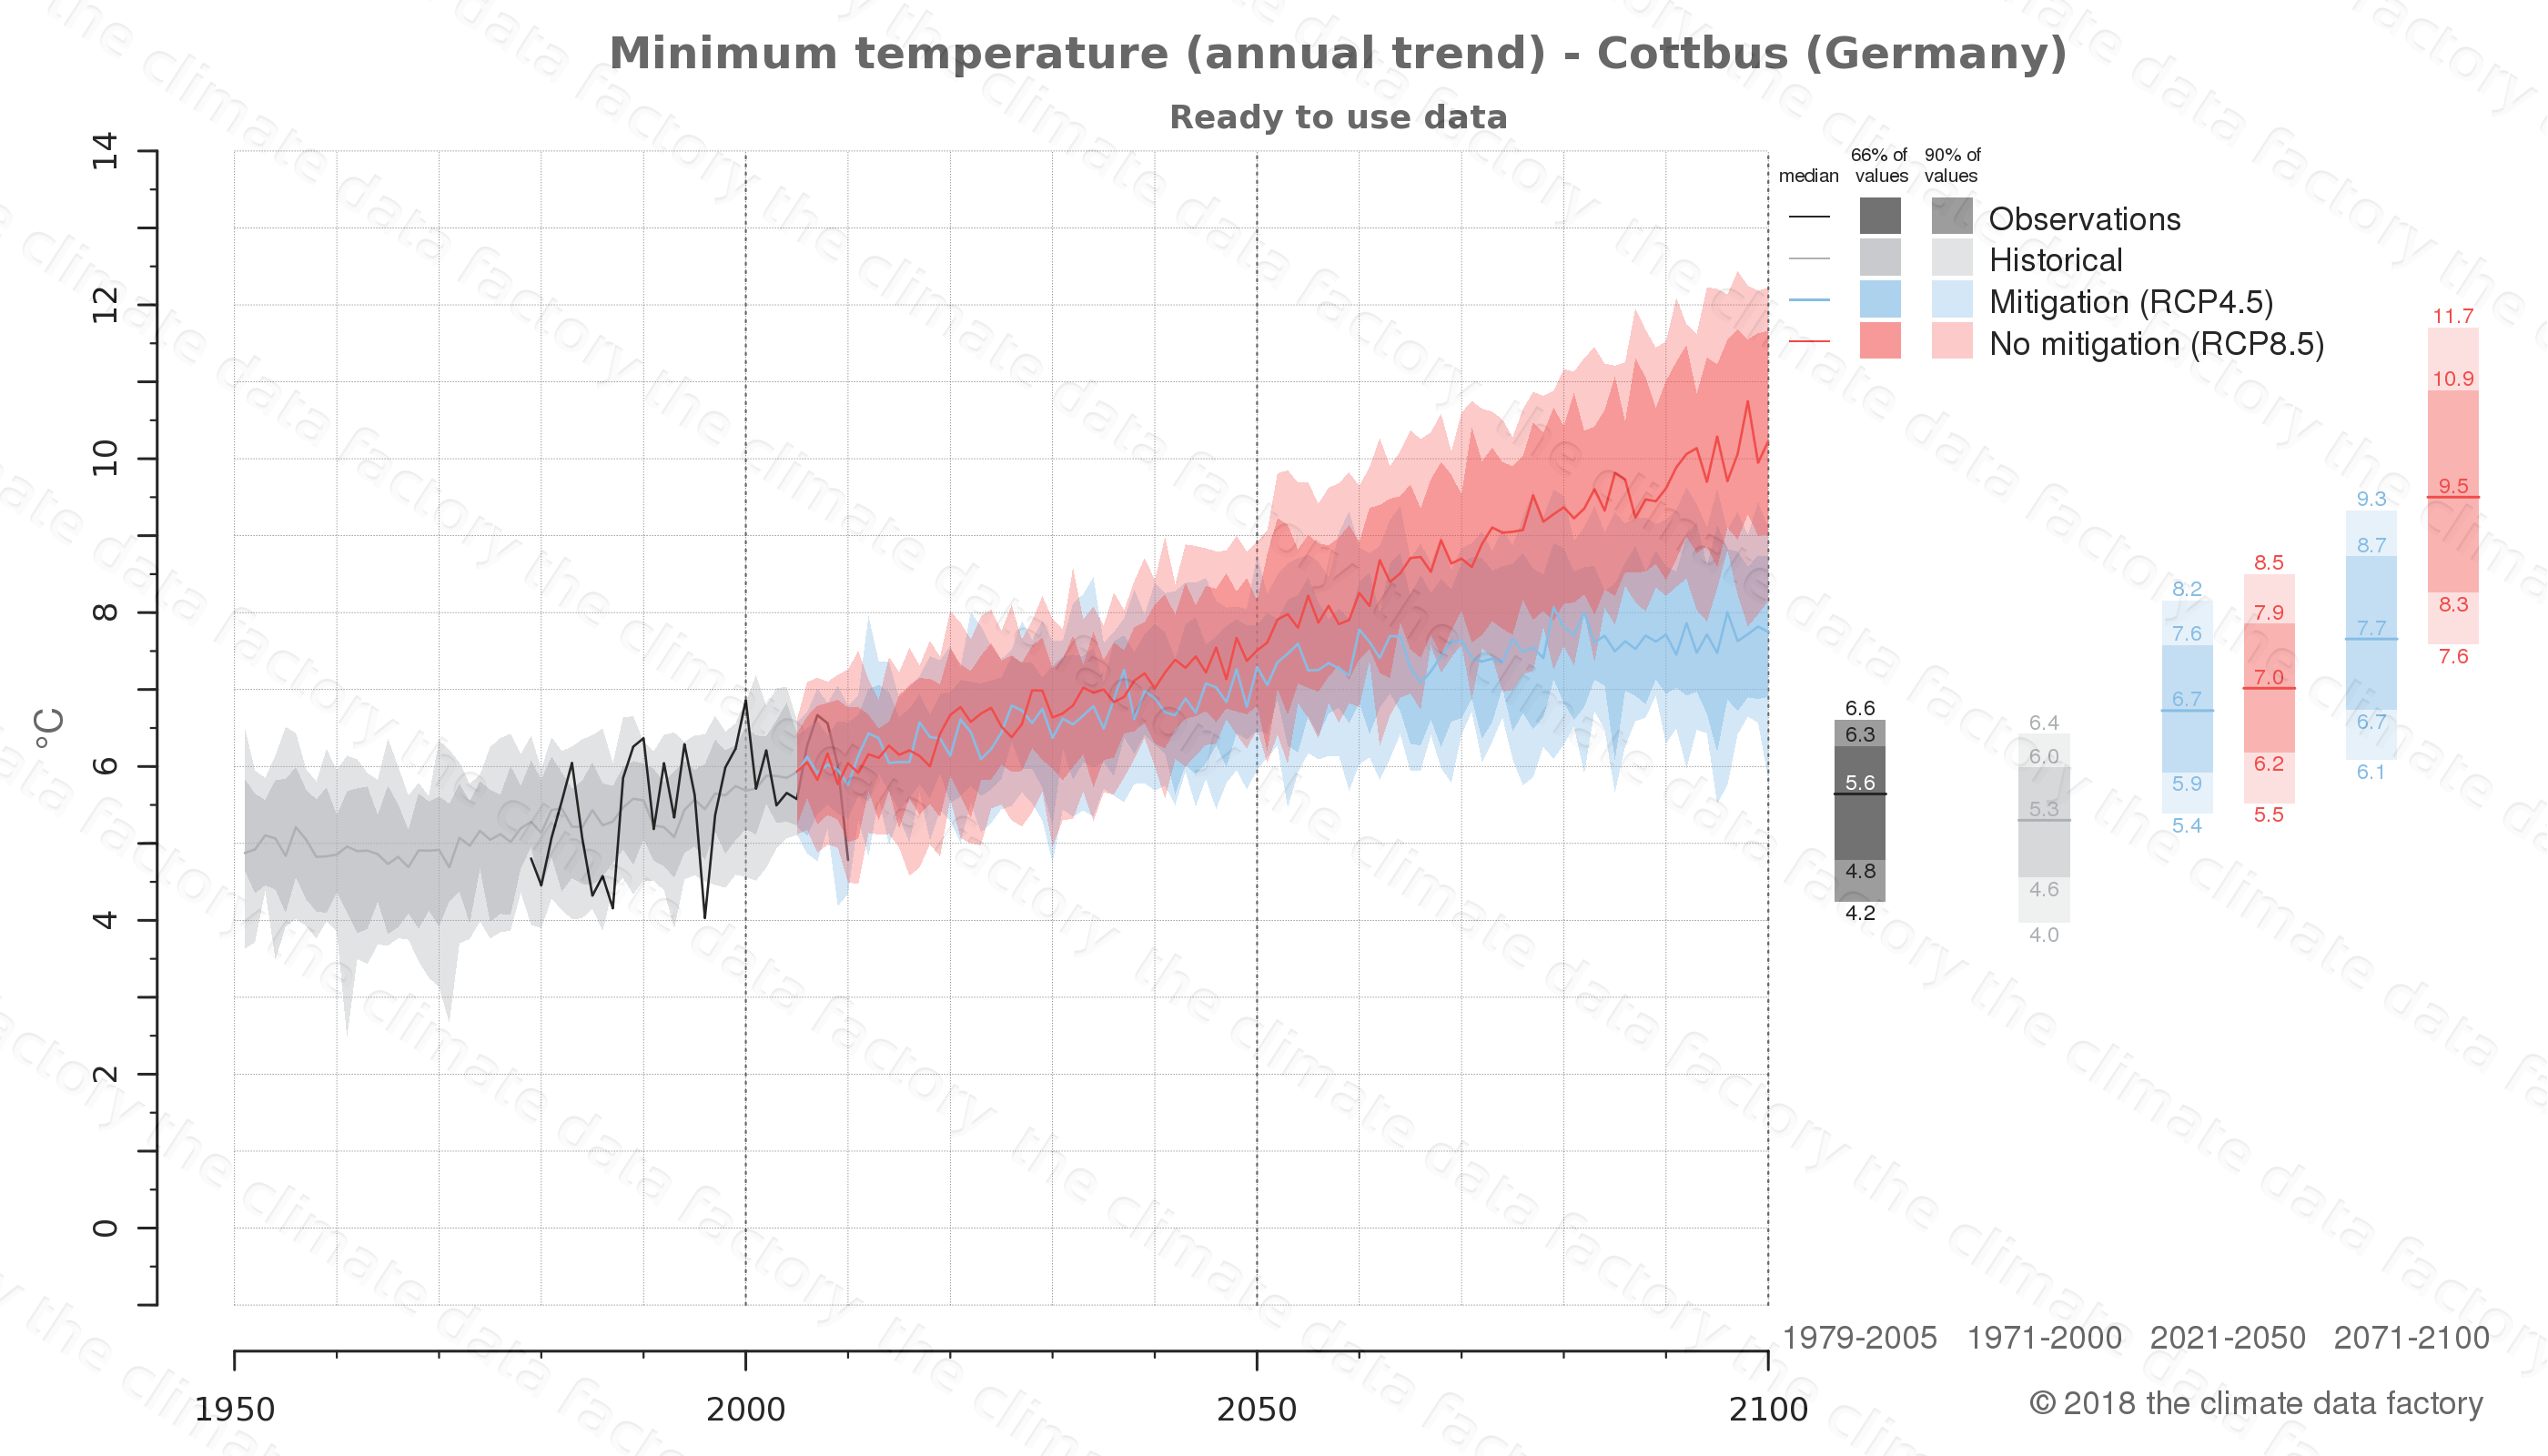 climate change data policy adaptation climate graph city data minimum-temperature cottbus germany